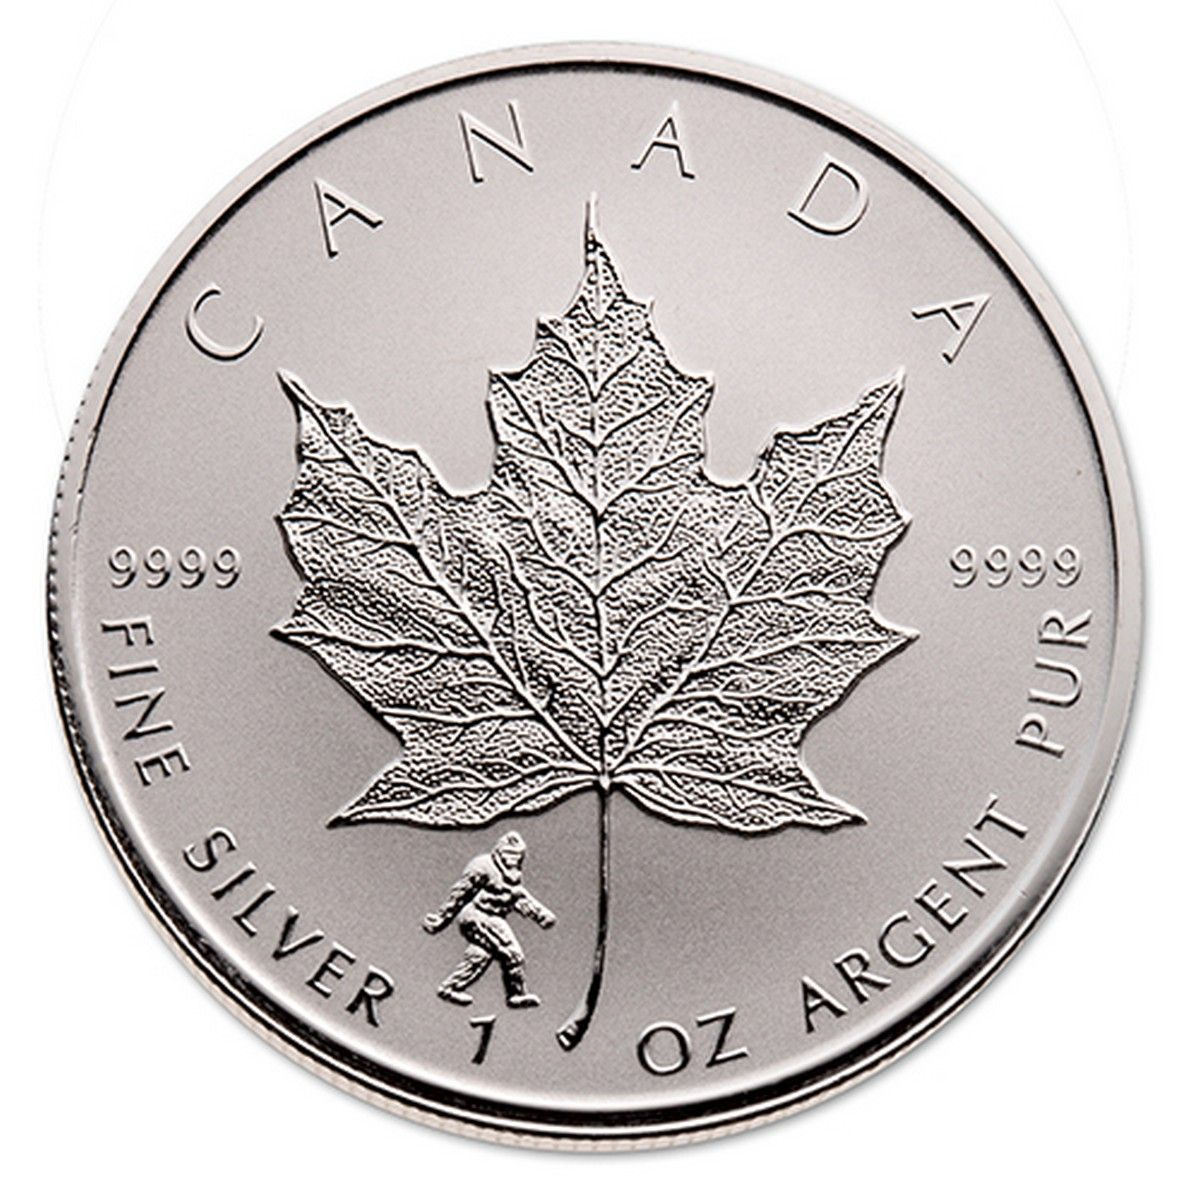 2016 Bigfoot 1 Oz Privy Silver Maple Leaf Canadian Pmx Silver Maple Leaf Canadian Maple Leaf Silver Bullion Coins